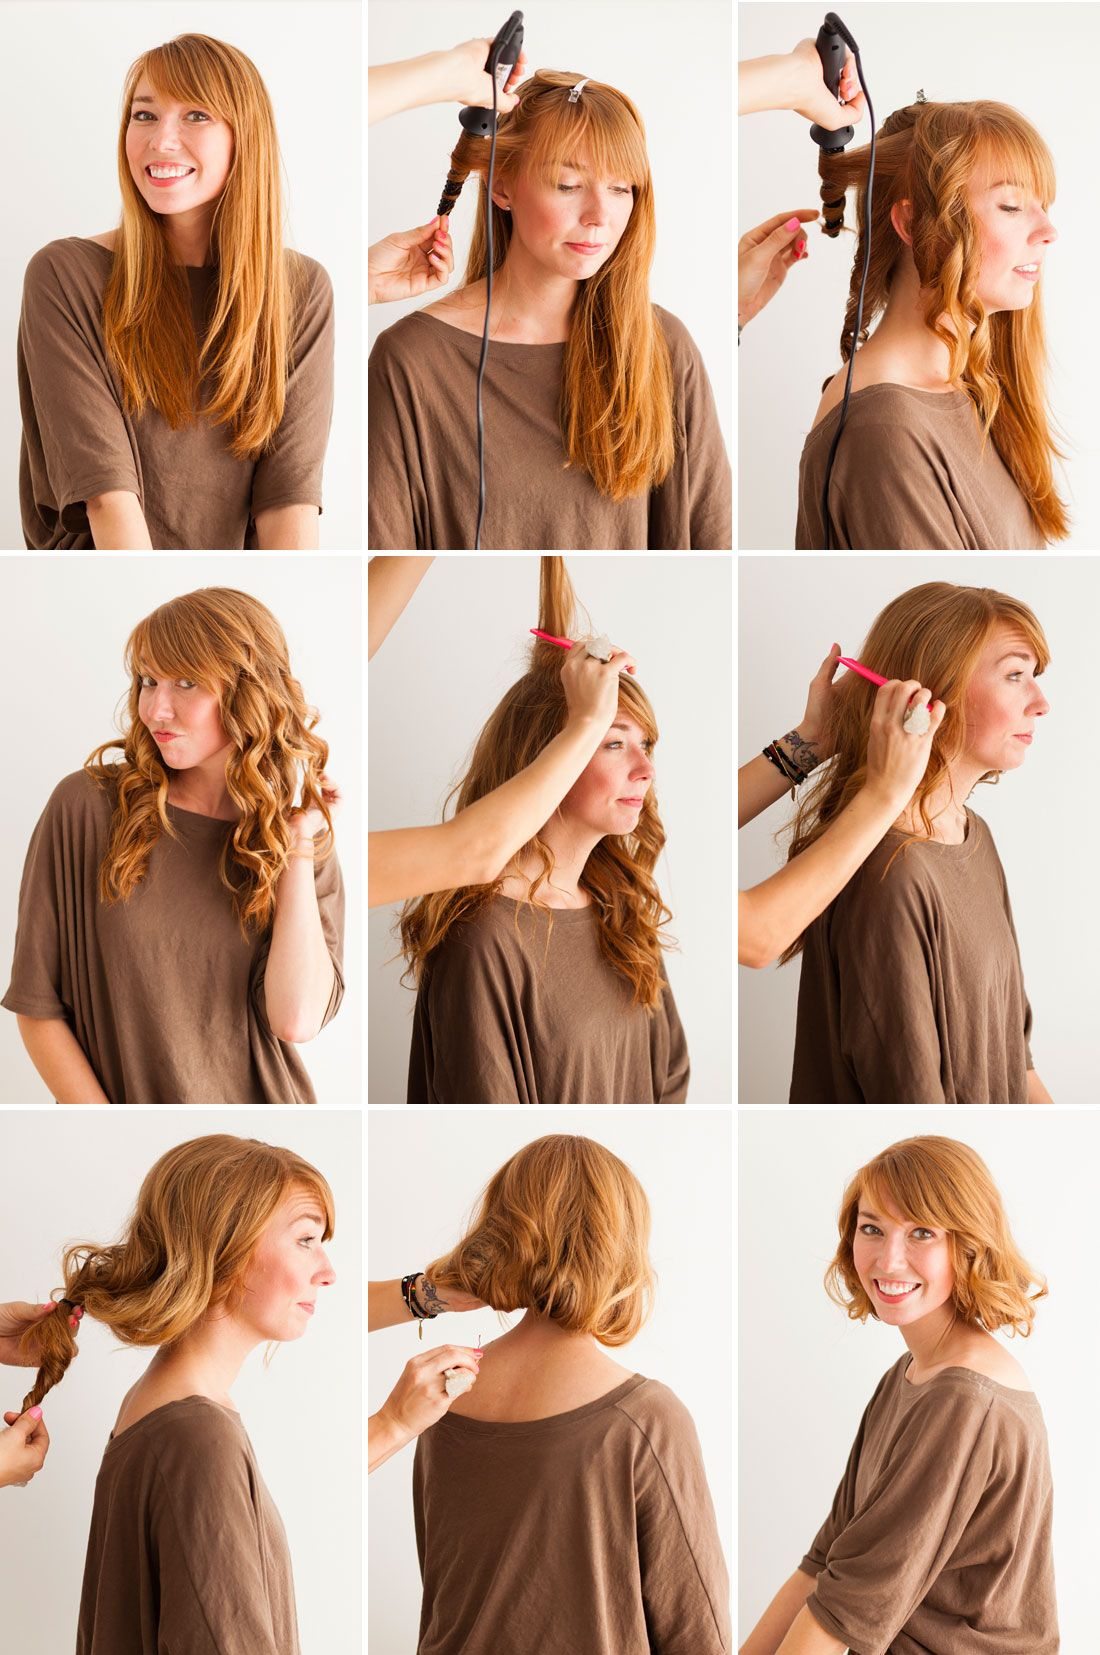 Forum on this topic: 8 Faux Bobs To Wear To The , 8-faux-bobs-to-wear-to-the/